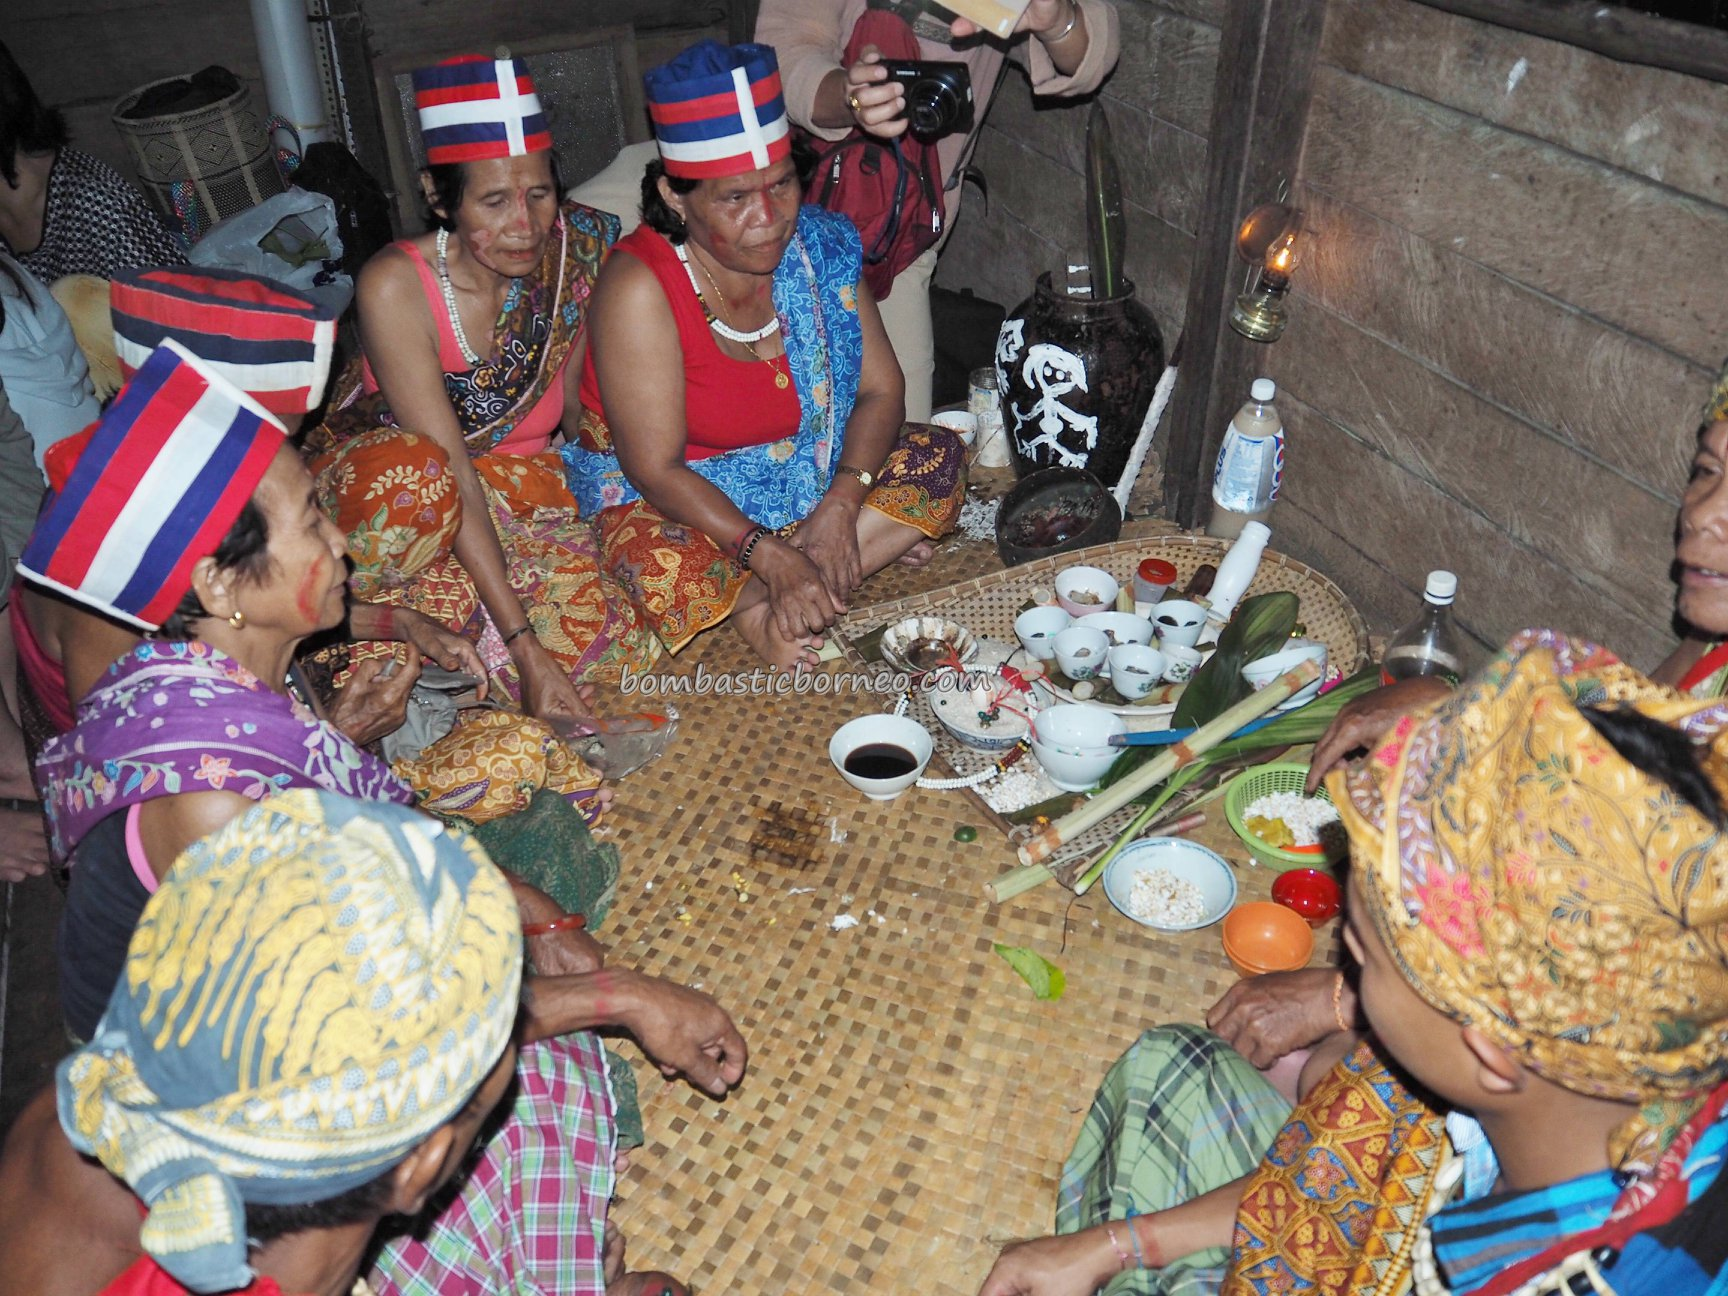 spiritual healing, dukun, ritual, authentic, traditional, culture, native, tribal, Kuching, Tourism, Travel guide, 婆罗洲砂拉越, 石隆门原住民文化, 古晋比达友族祭司